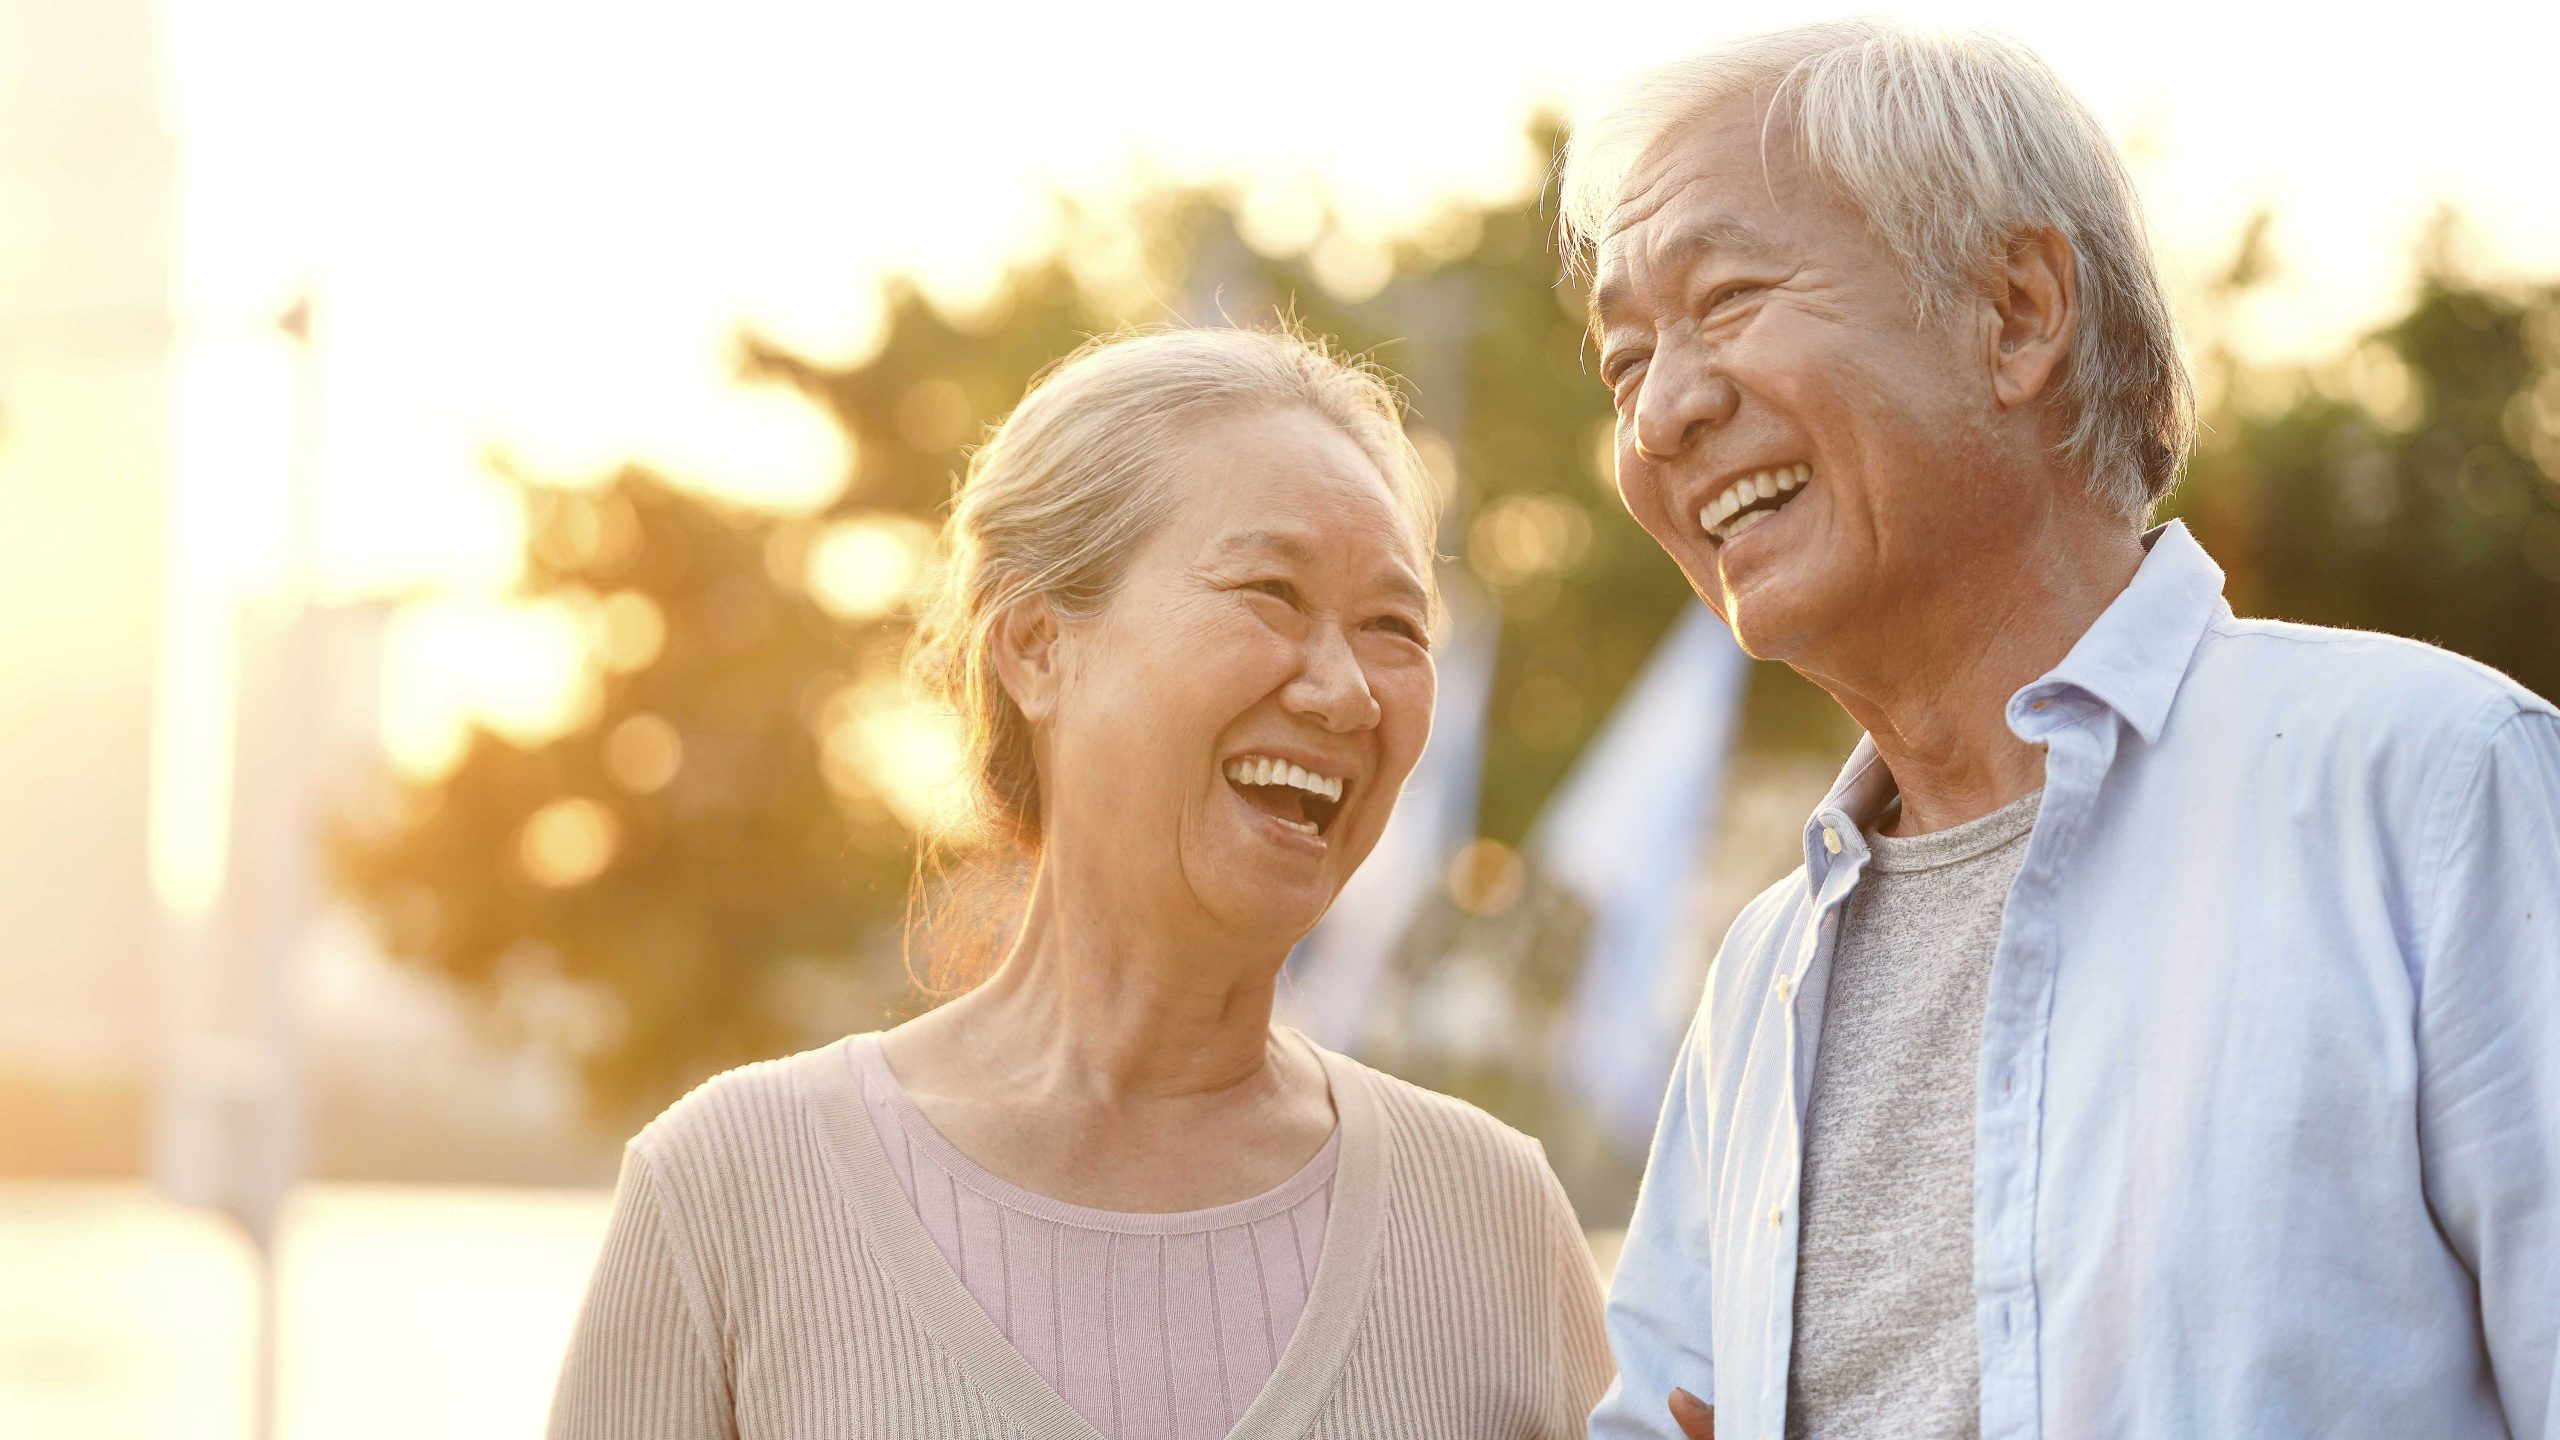 Happy senior couple laughing together in the sunshine